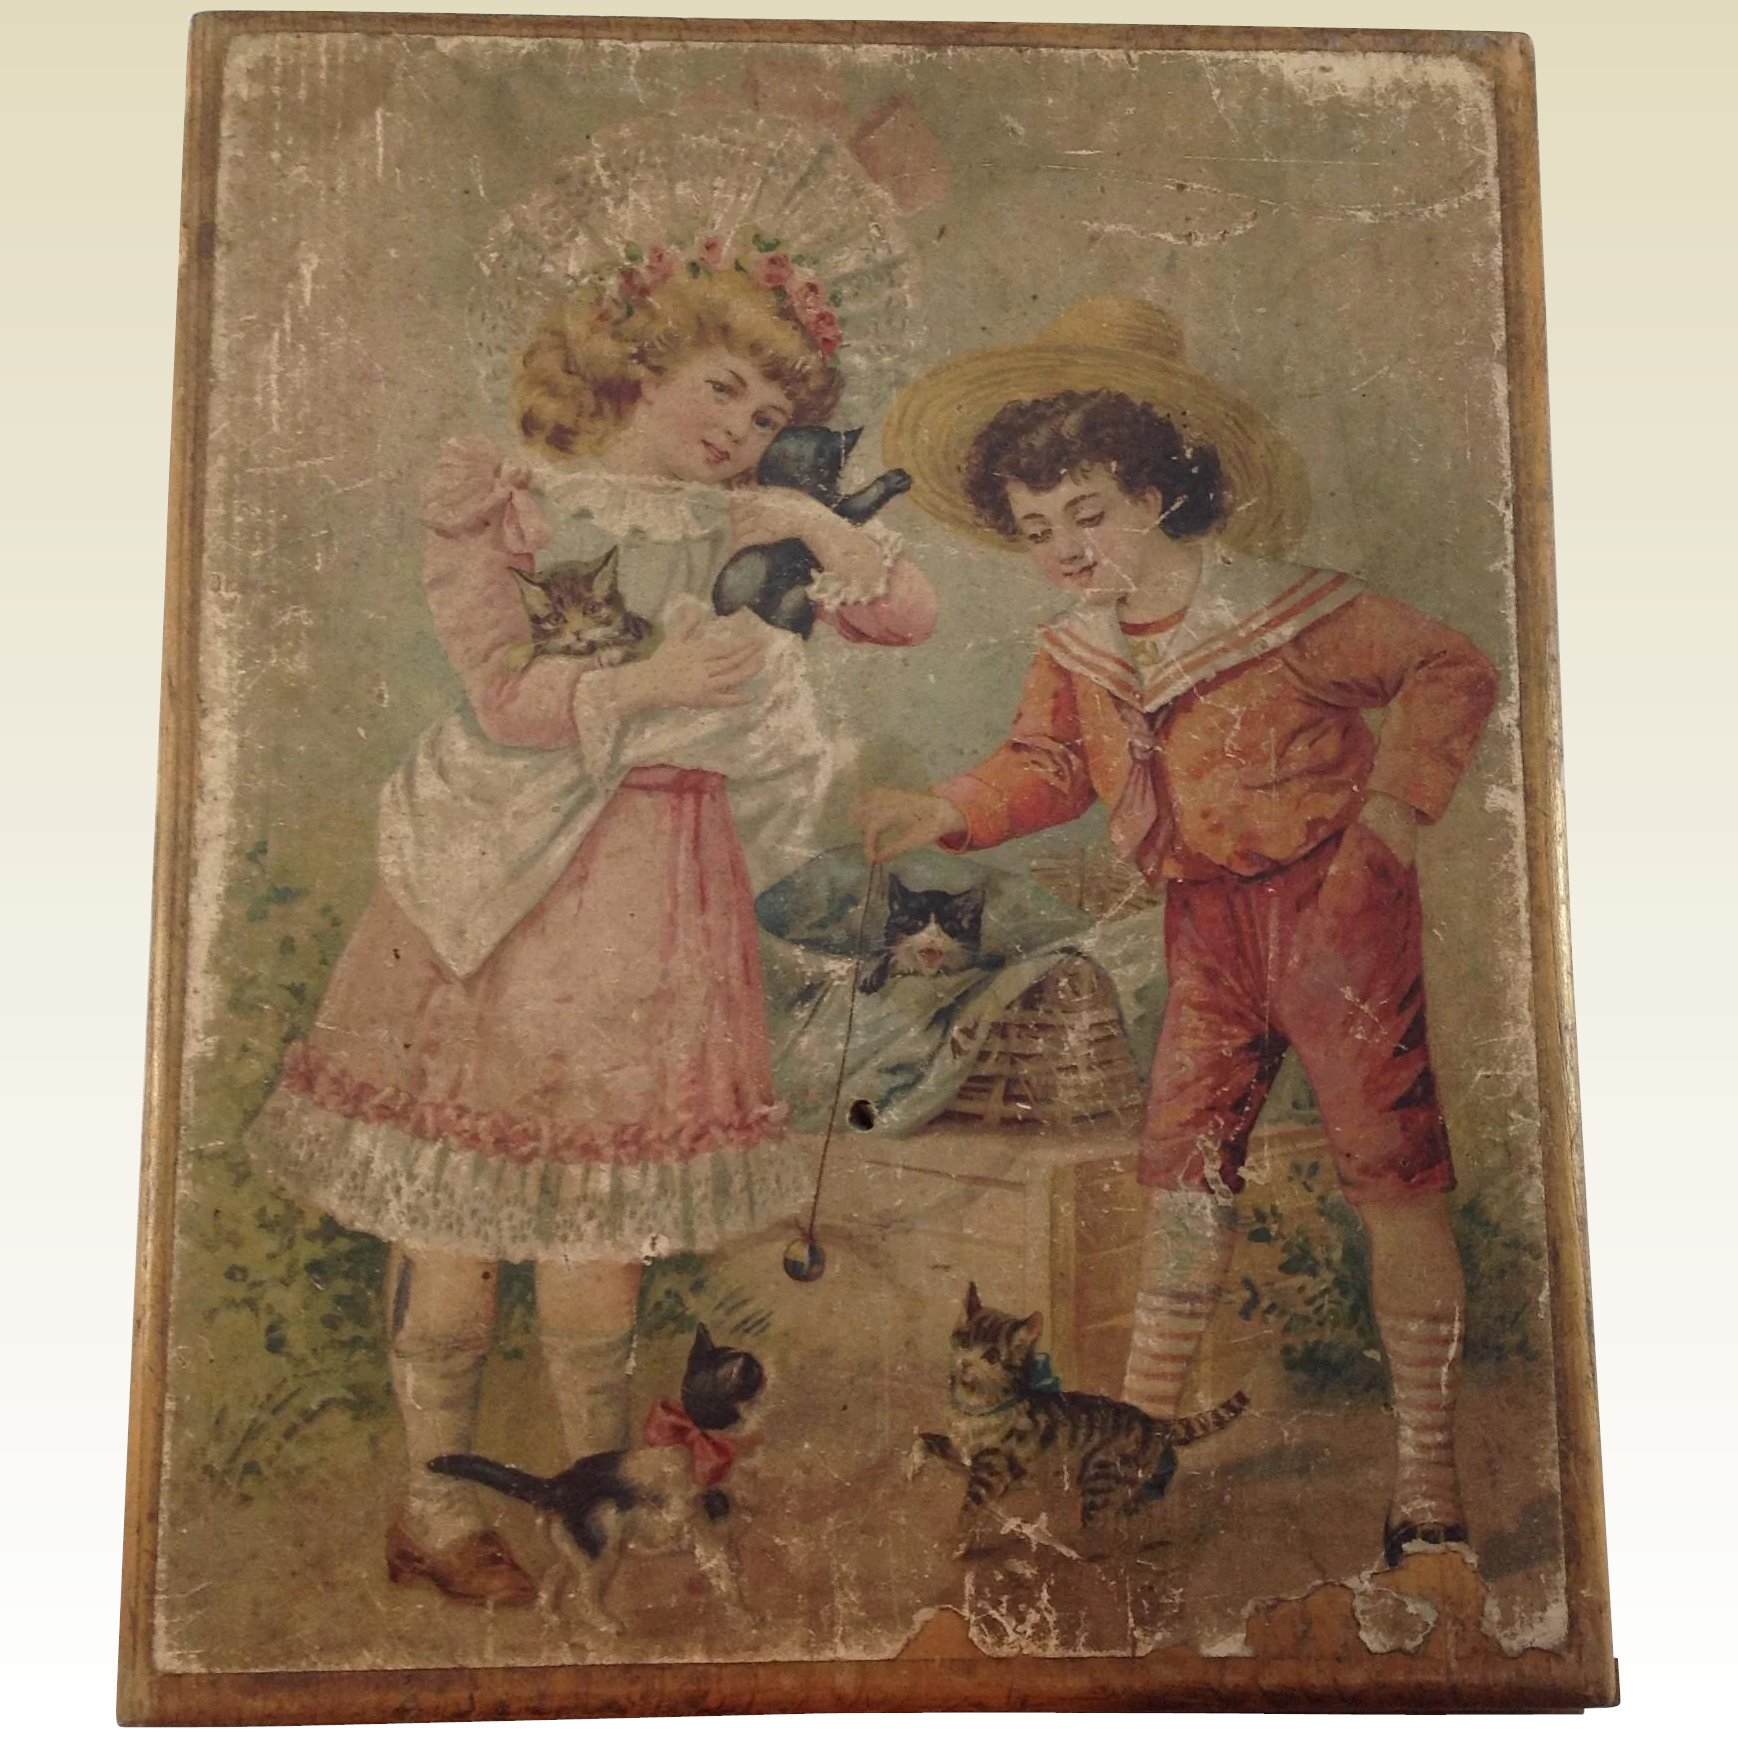 Antique French Six Sided Lithograph Wood Block Puzzle Toy